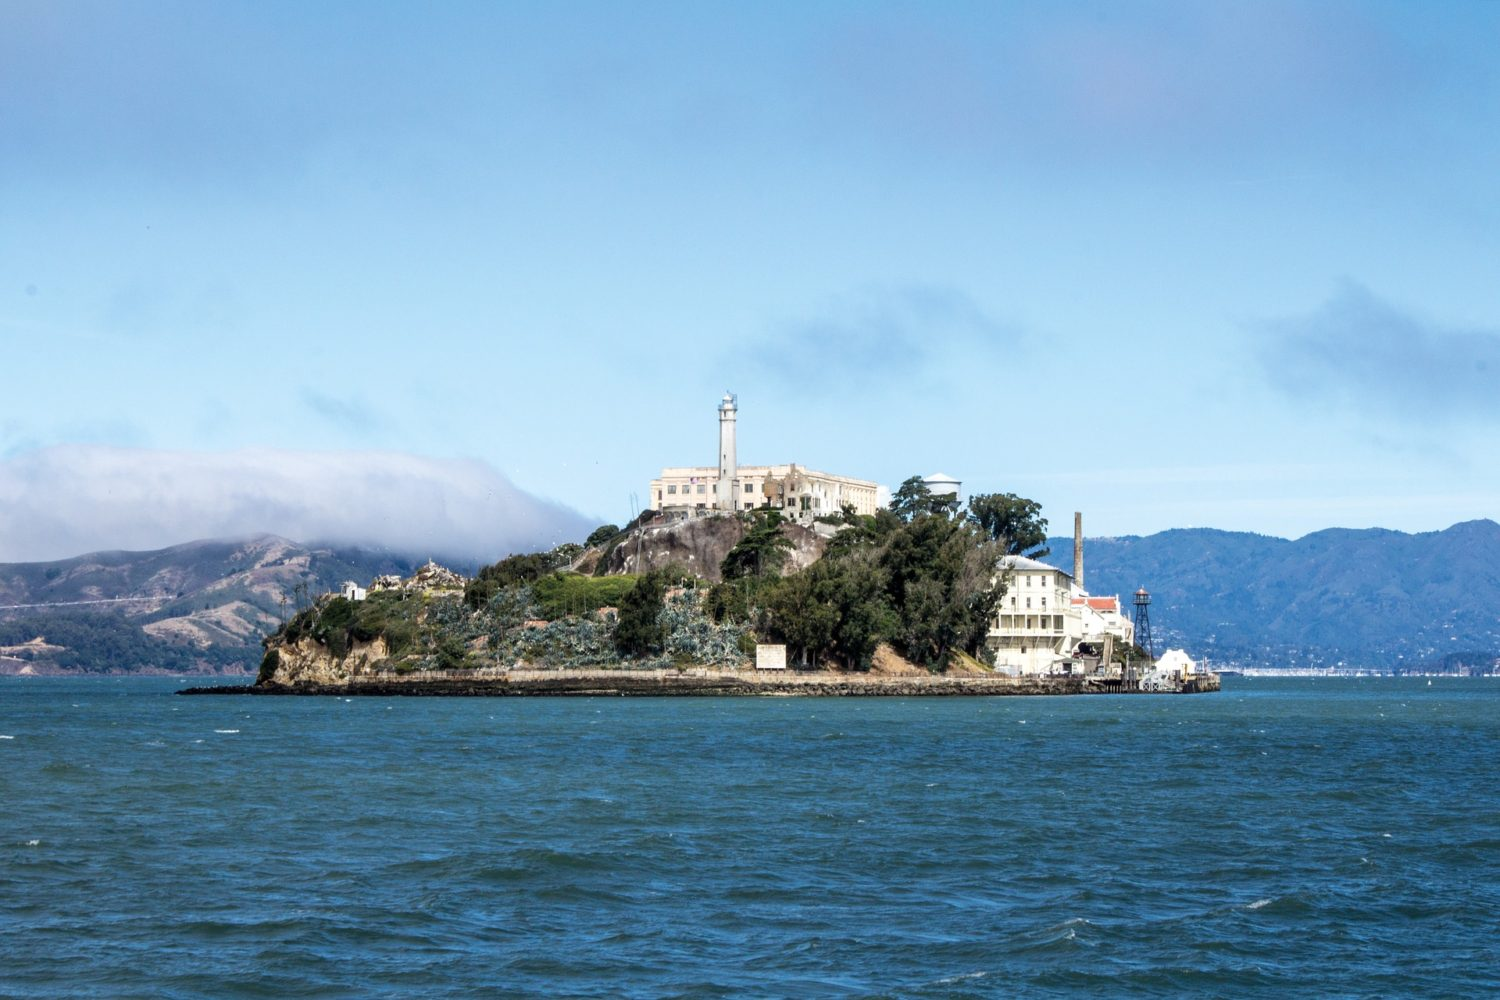 Alcatraz Island, located in San Francisco Bay